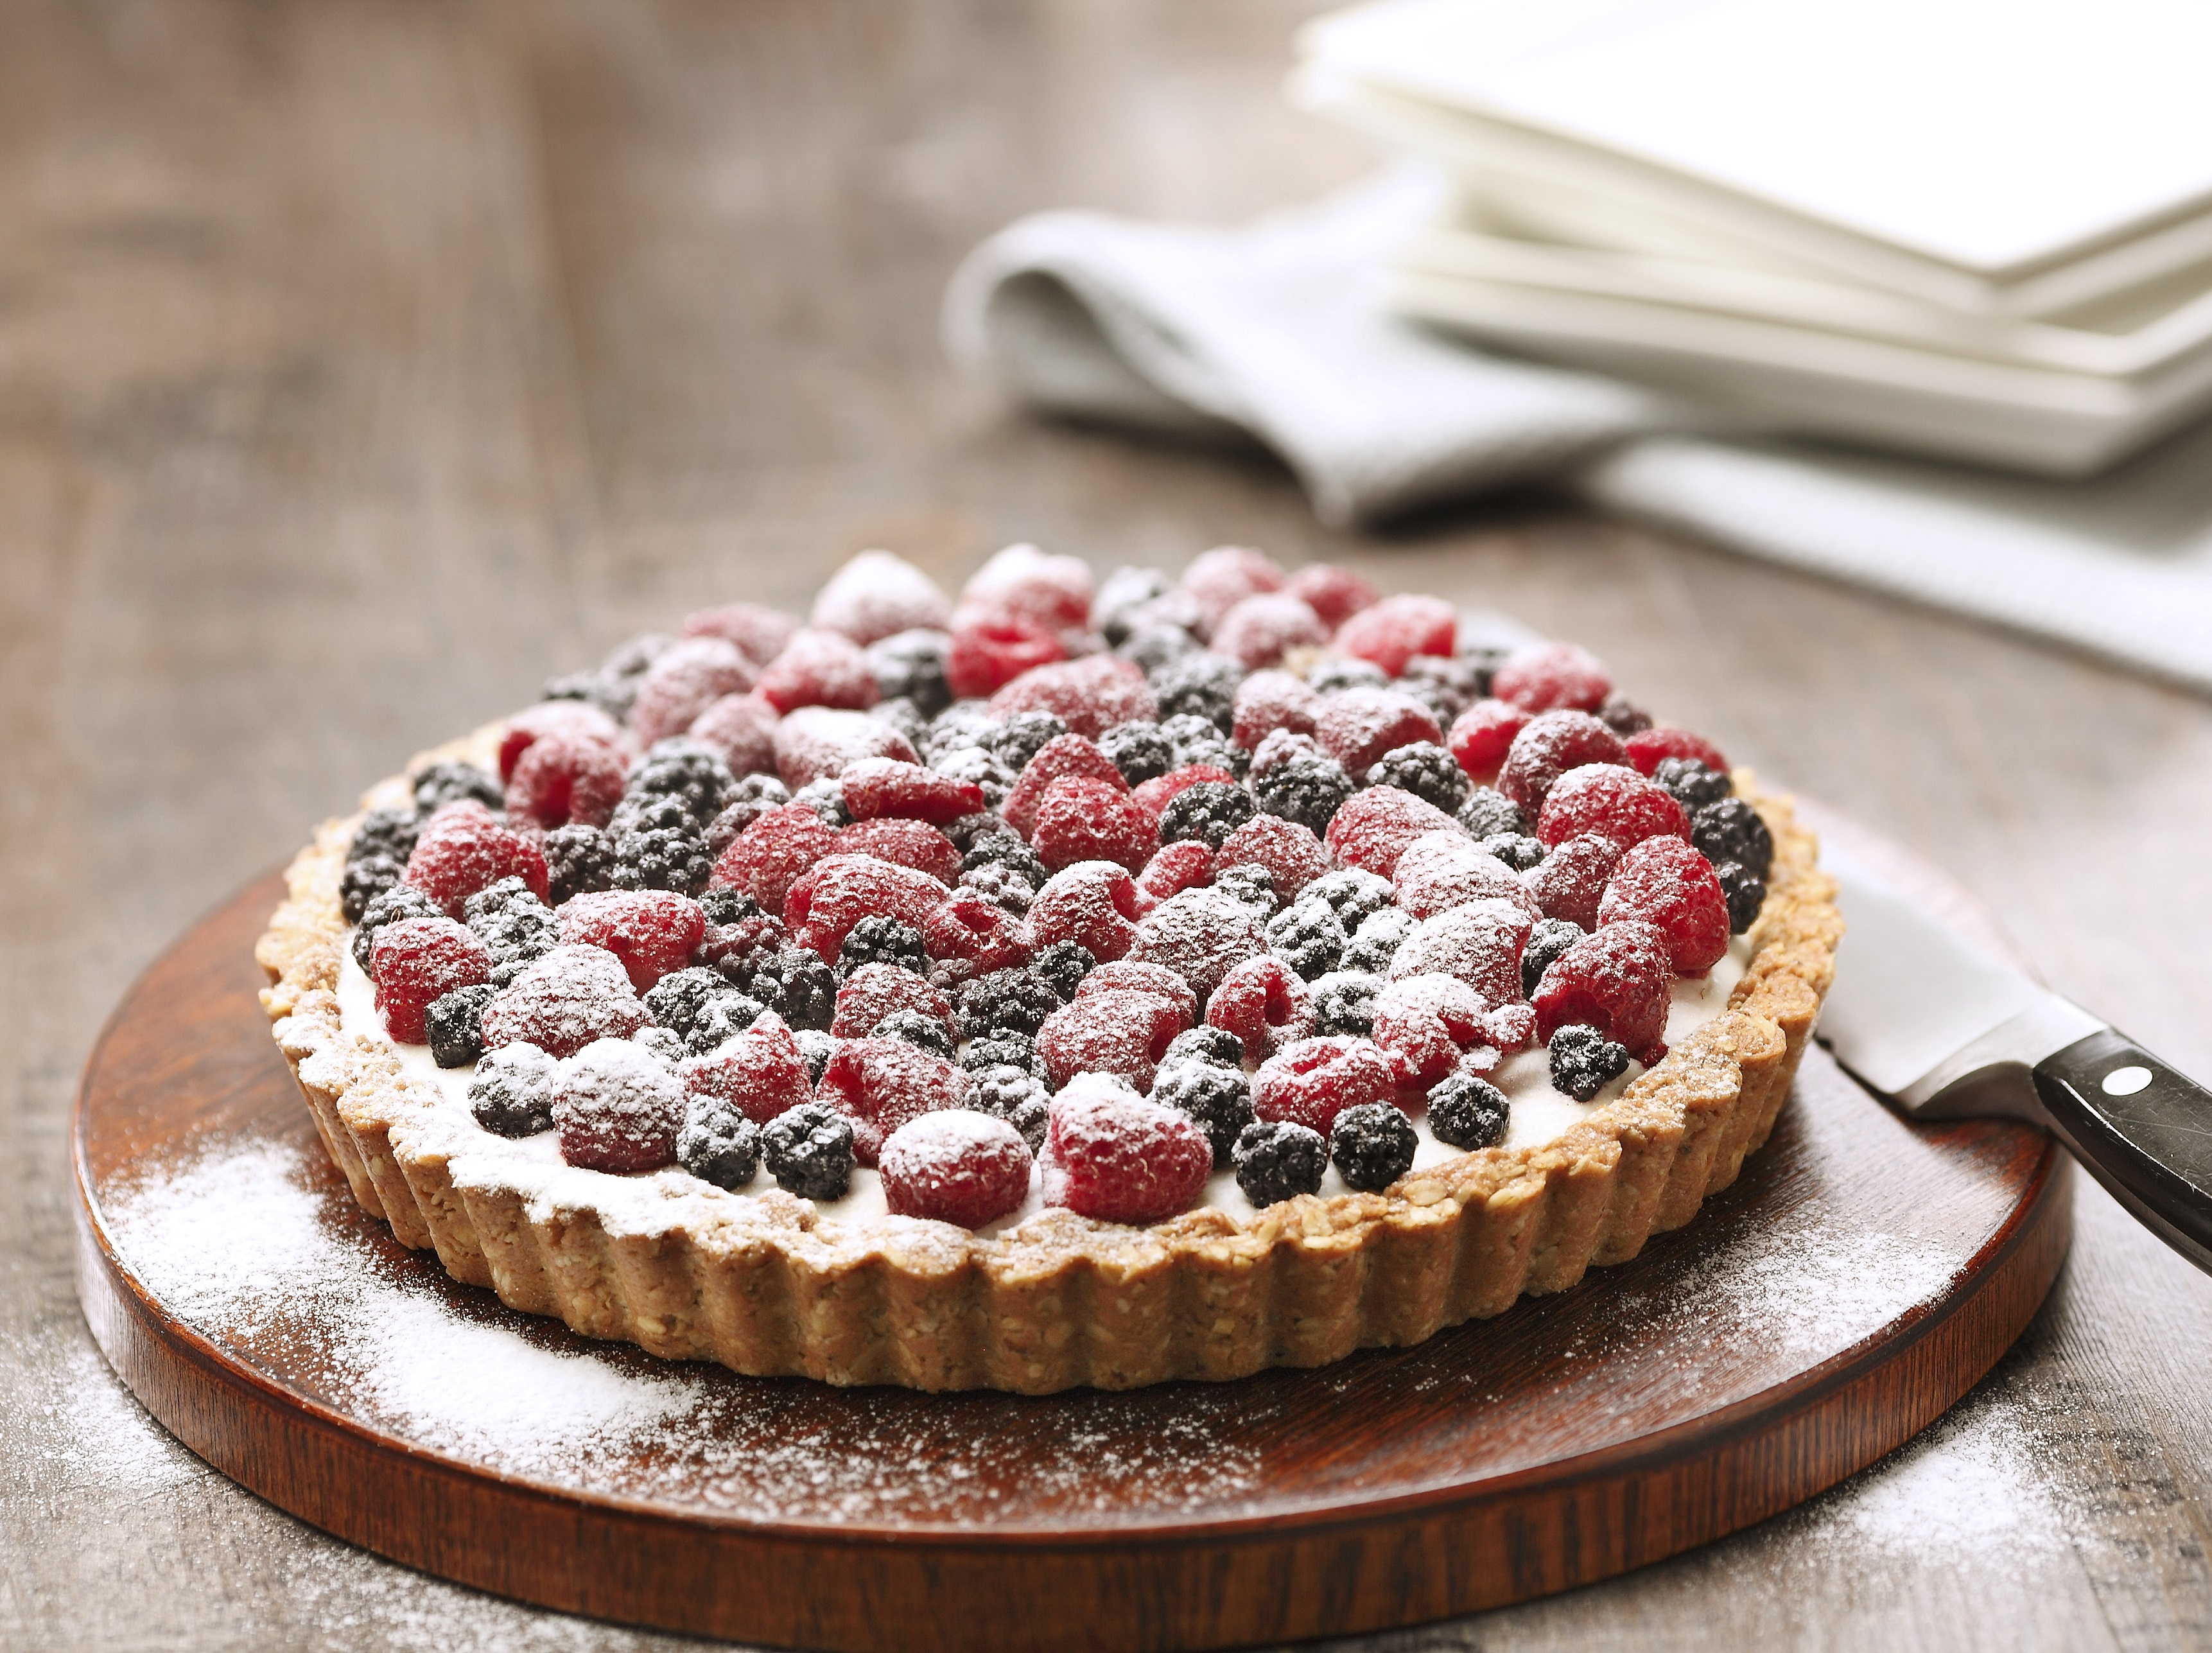 GREEK YOGURT & MASCARPONE MIXED BERRIES PIE